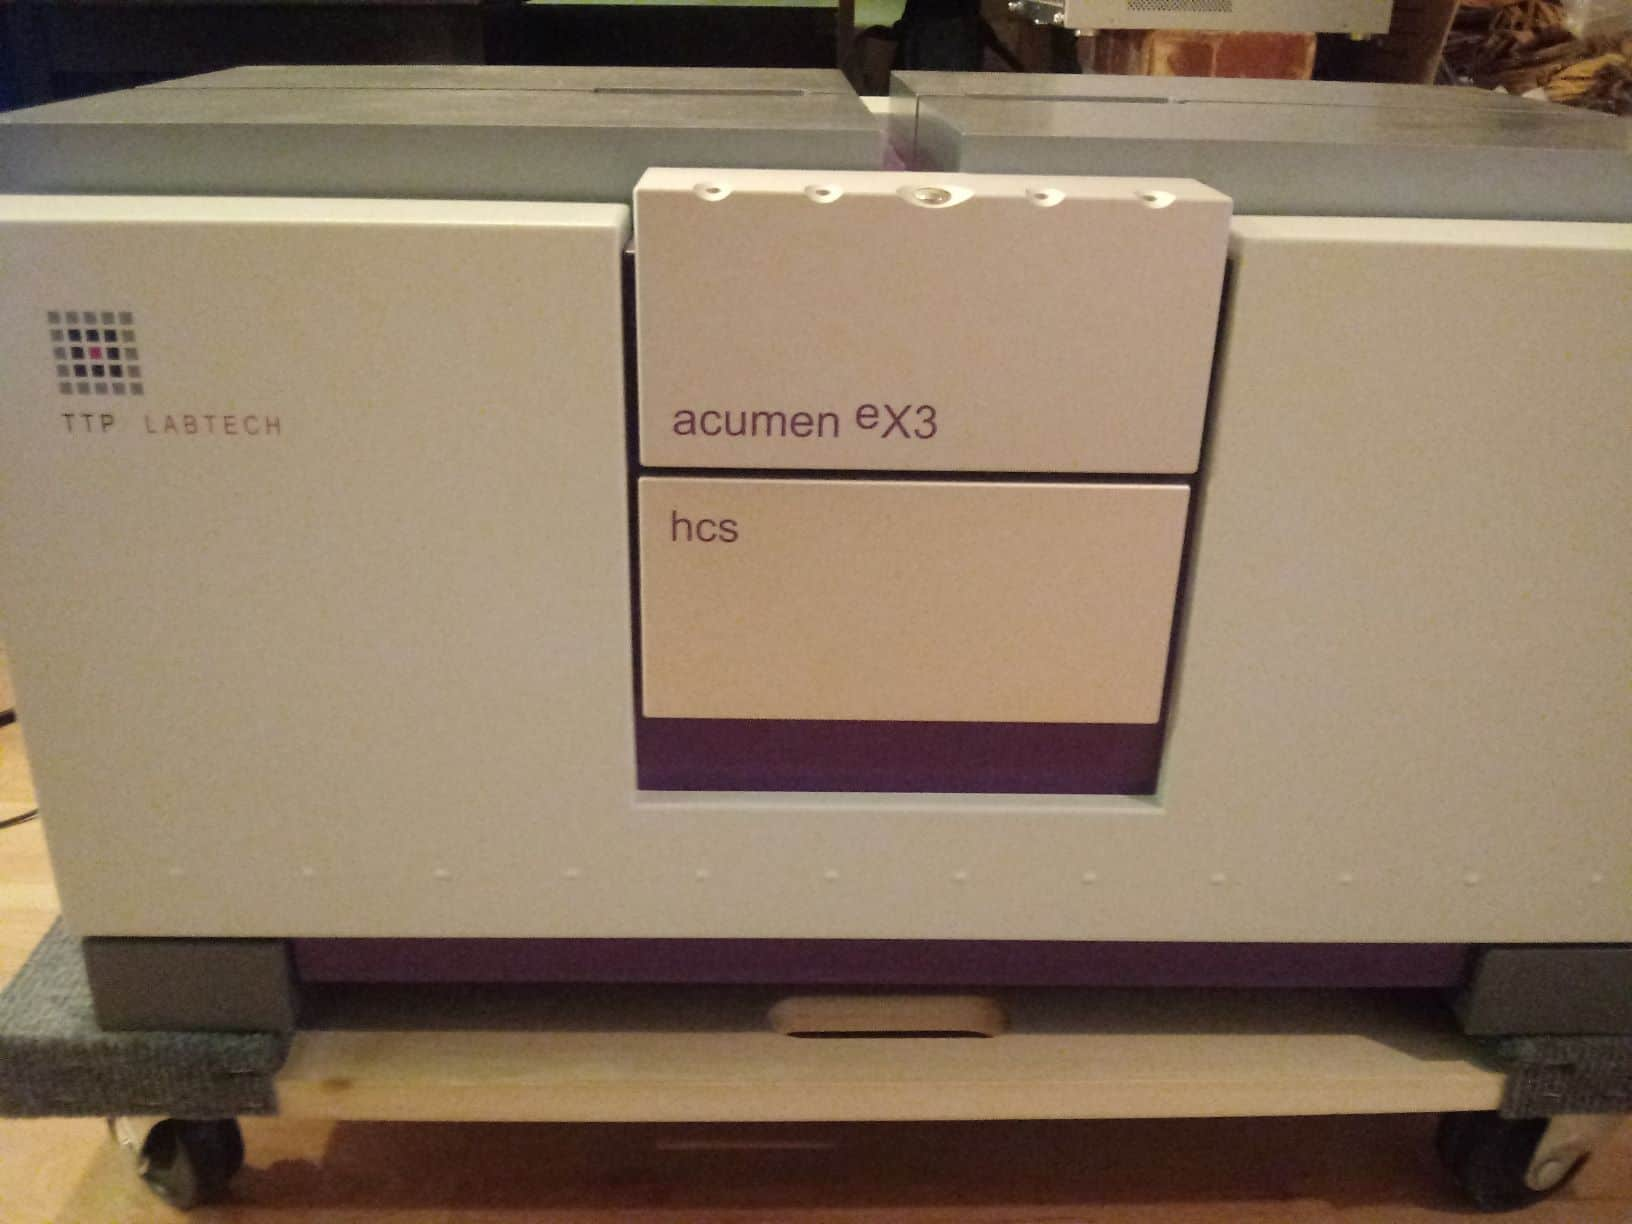 Acumen eX3 Microplate Cytometer